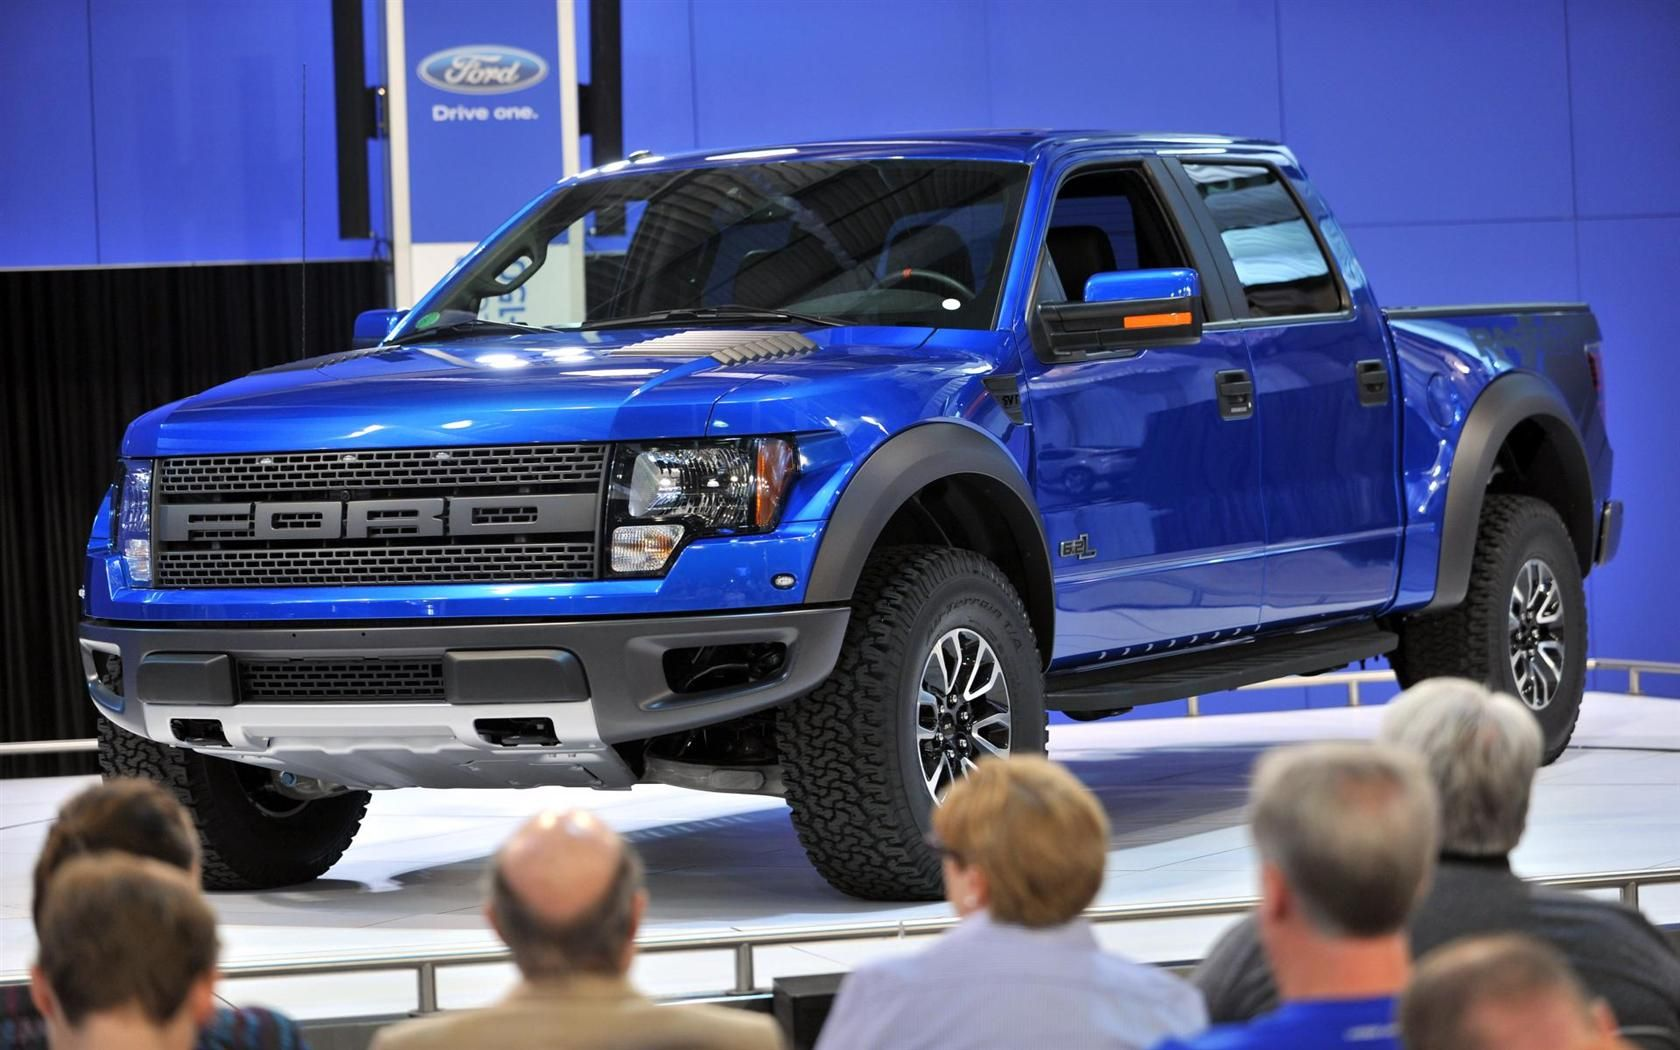 Ford svt f 50 raptor truck right hand drive conversion classic prototype us cars pinterest raptor truck ford svt and ford raptor